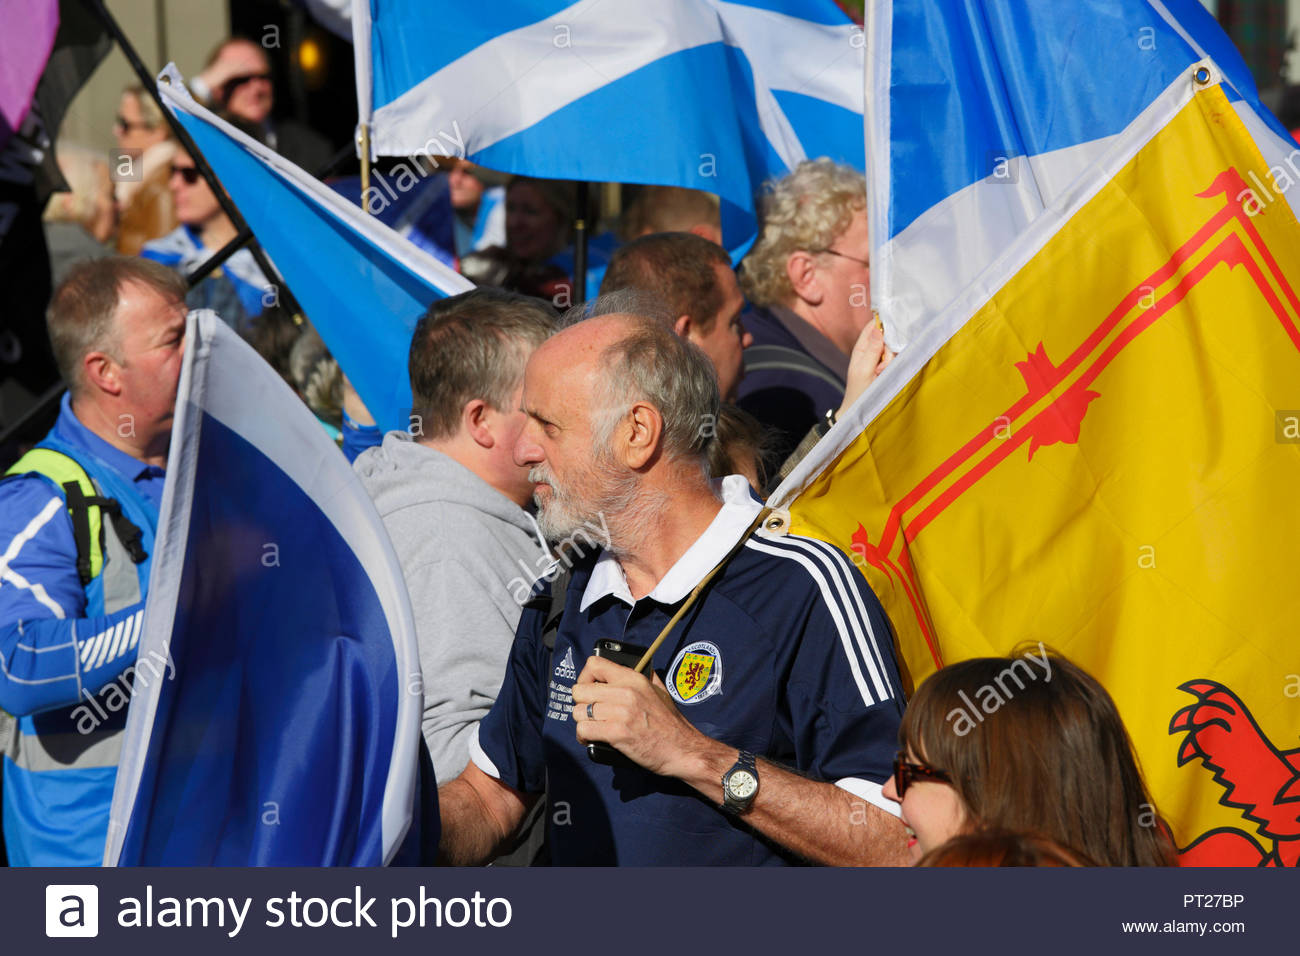 Edinburgh, United Kingdom. 6th October, 2018. All Under One Banner (AUOB) march For Independence, marching down the Royal Mile to the Scottish parliament for a rally in Holyrood Park. AUOB are a Pro-Independence organisation whose core aim is to march at regular intervals until Scotland is Free. They will host public processions in support of Scotland regaining Independence.    Credit: Craig Brown/Alamy Live News. - Stock Image